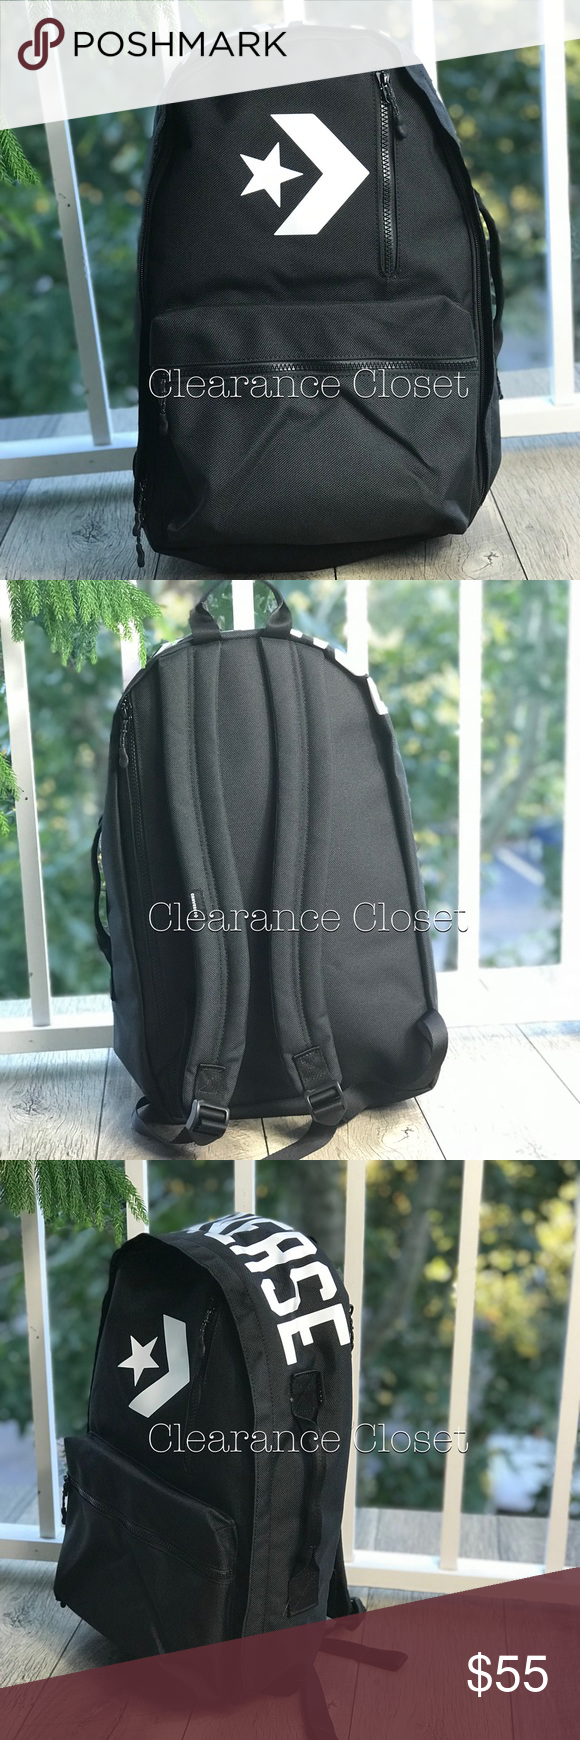 a1a65354fa NWT Converse Street 22 Backpack D Black Unisex Brand new with tag. Price is  firm! No trades. Materials  fabric - Textile